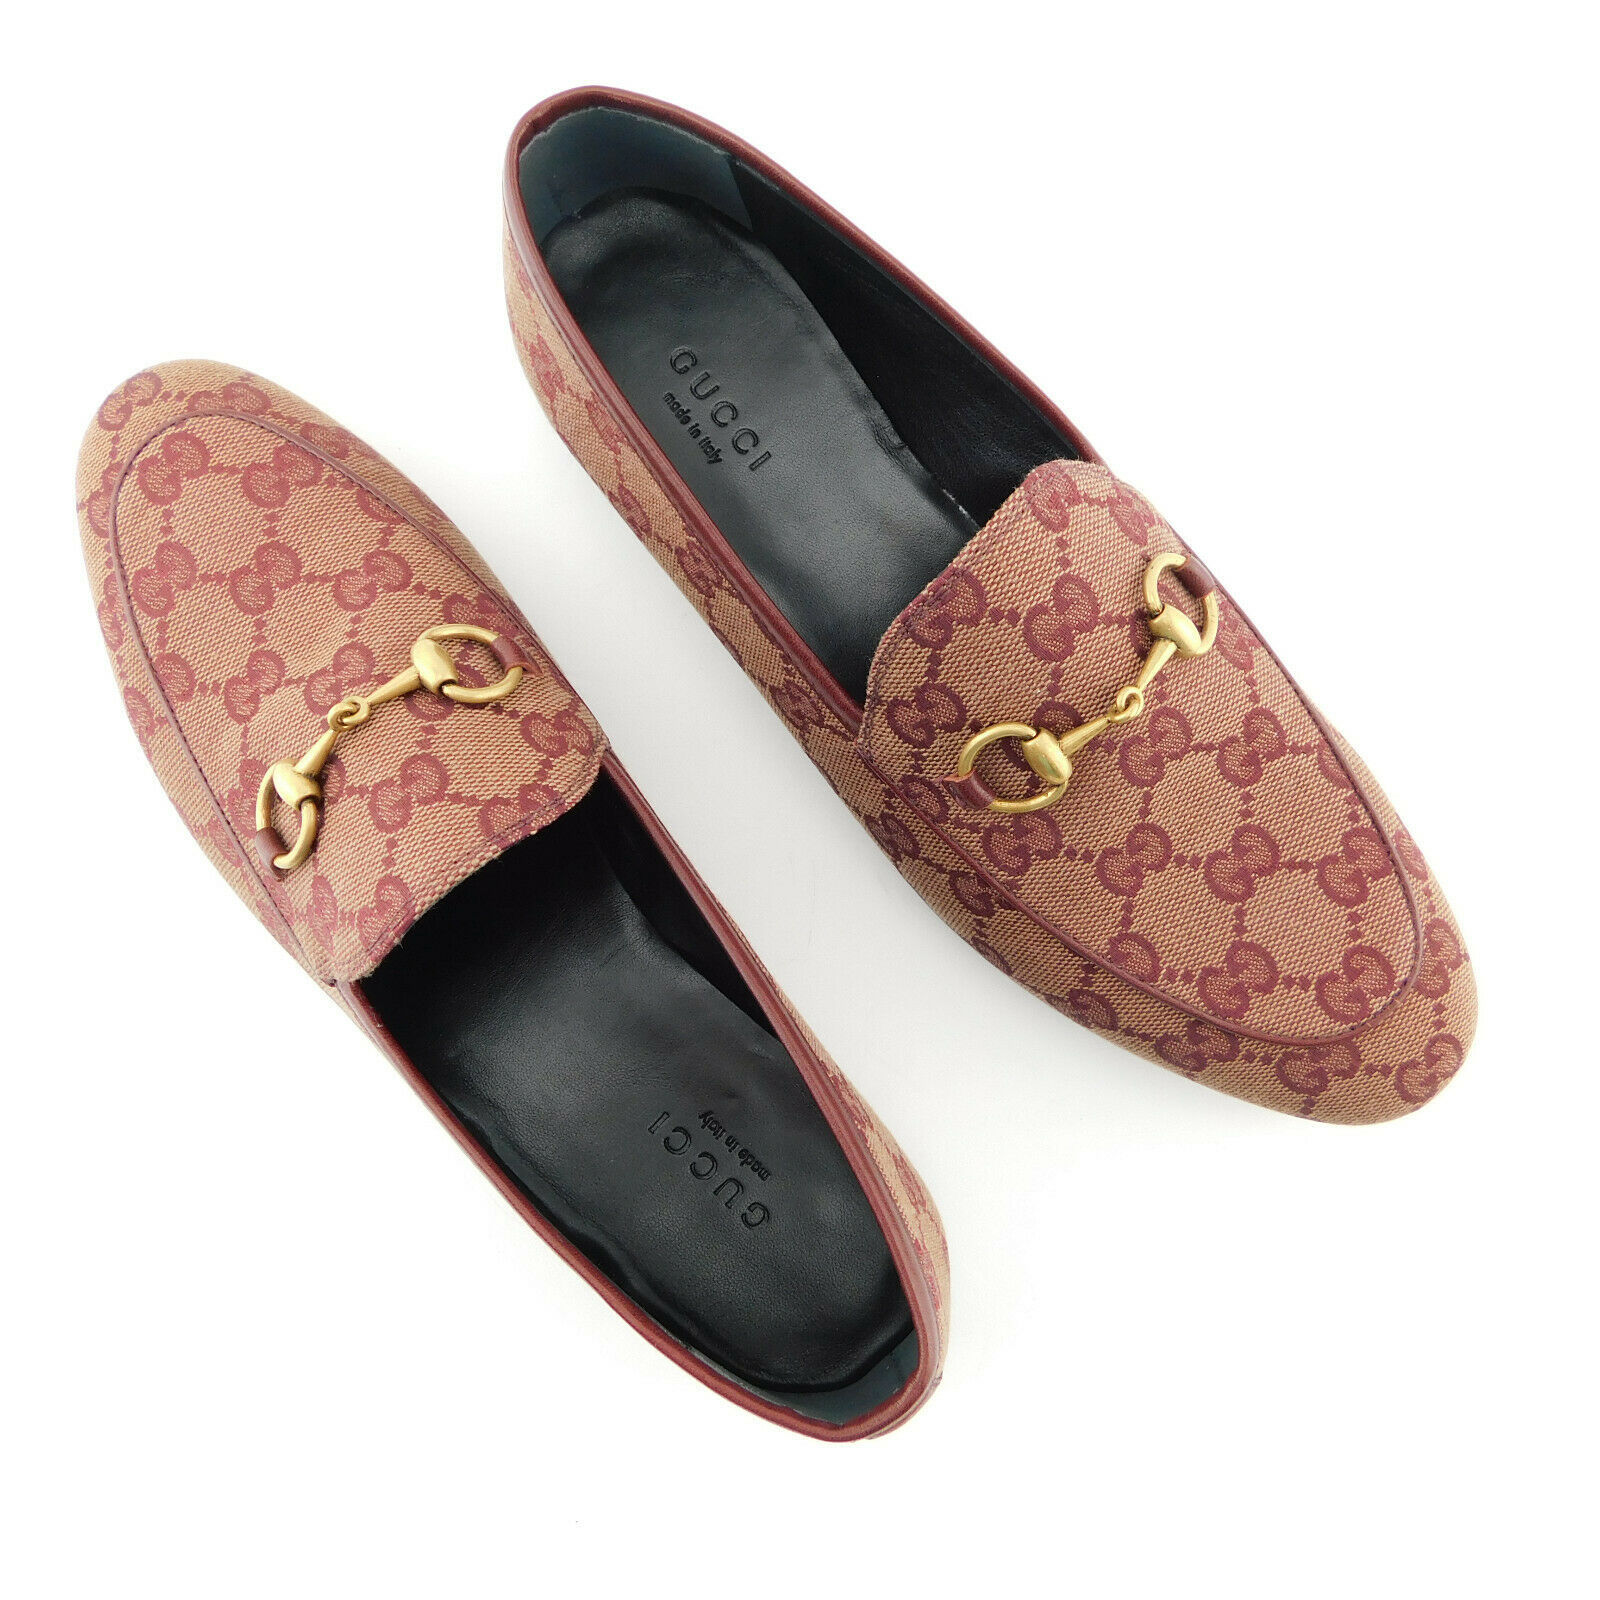 New GUCCI Size 7.5 JORDAAN GG Signature Canvas Loafers Flats Shoes 37.5 Eur - $549.00